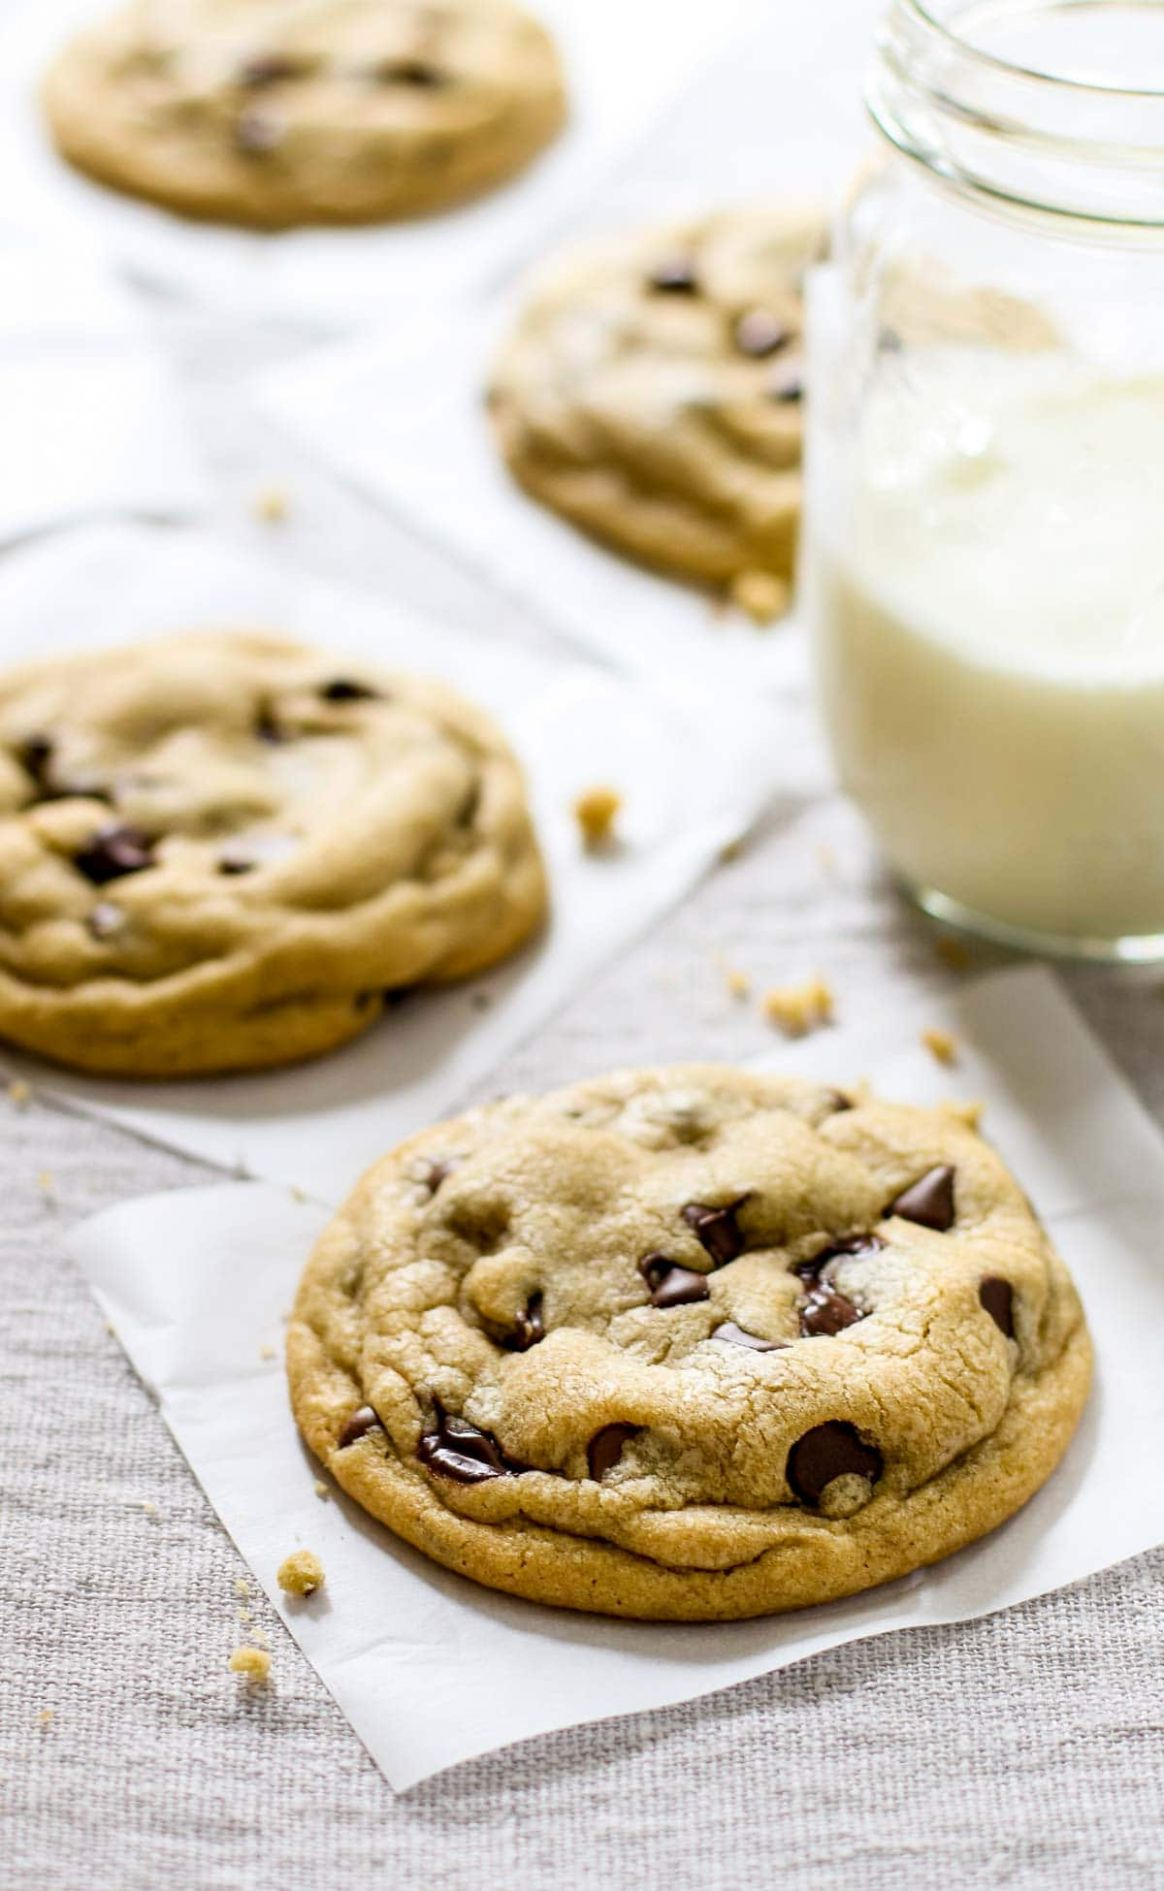 The Best Soft Chocolate Chip Cookies - Recipes Chocolate Chip Cookies